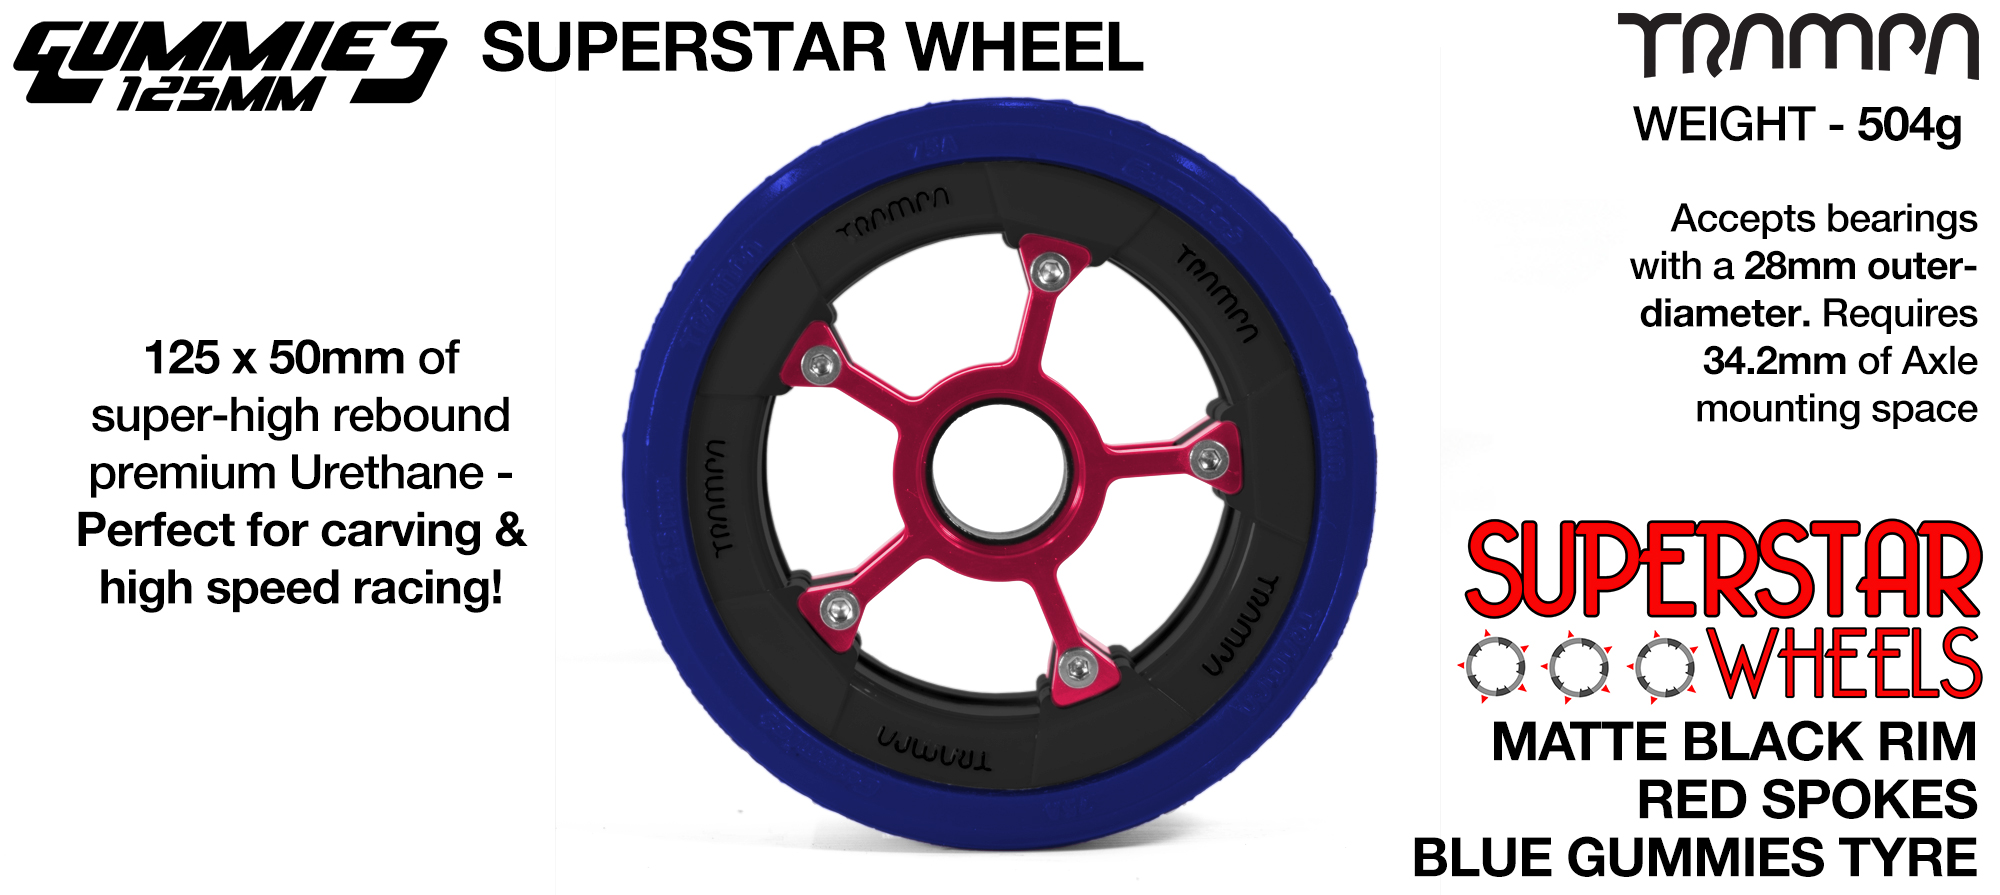 Superstar 125mm Longboard Wheels - Matt BLACK Superstar Rim RED Spokes with BLUE Gummies